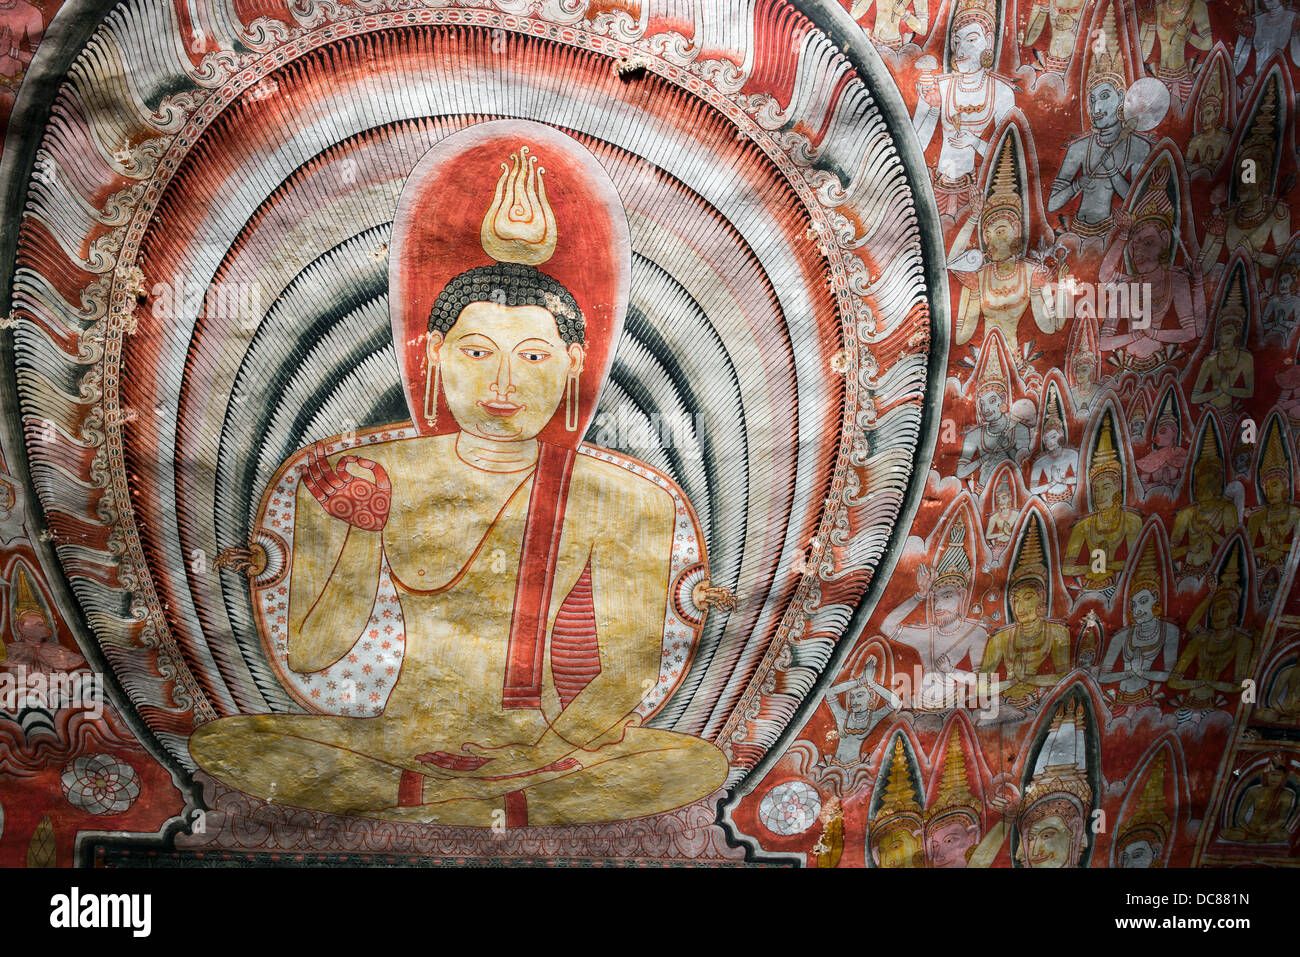 madera buddhist personals Search titles only has image posted today bundle duplicates include nearby areas chico, ca (chc) fresno / madera (fre.